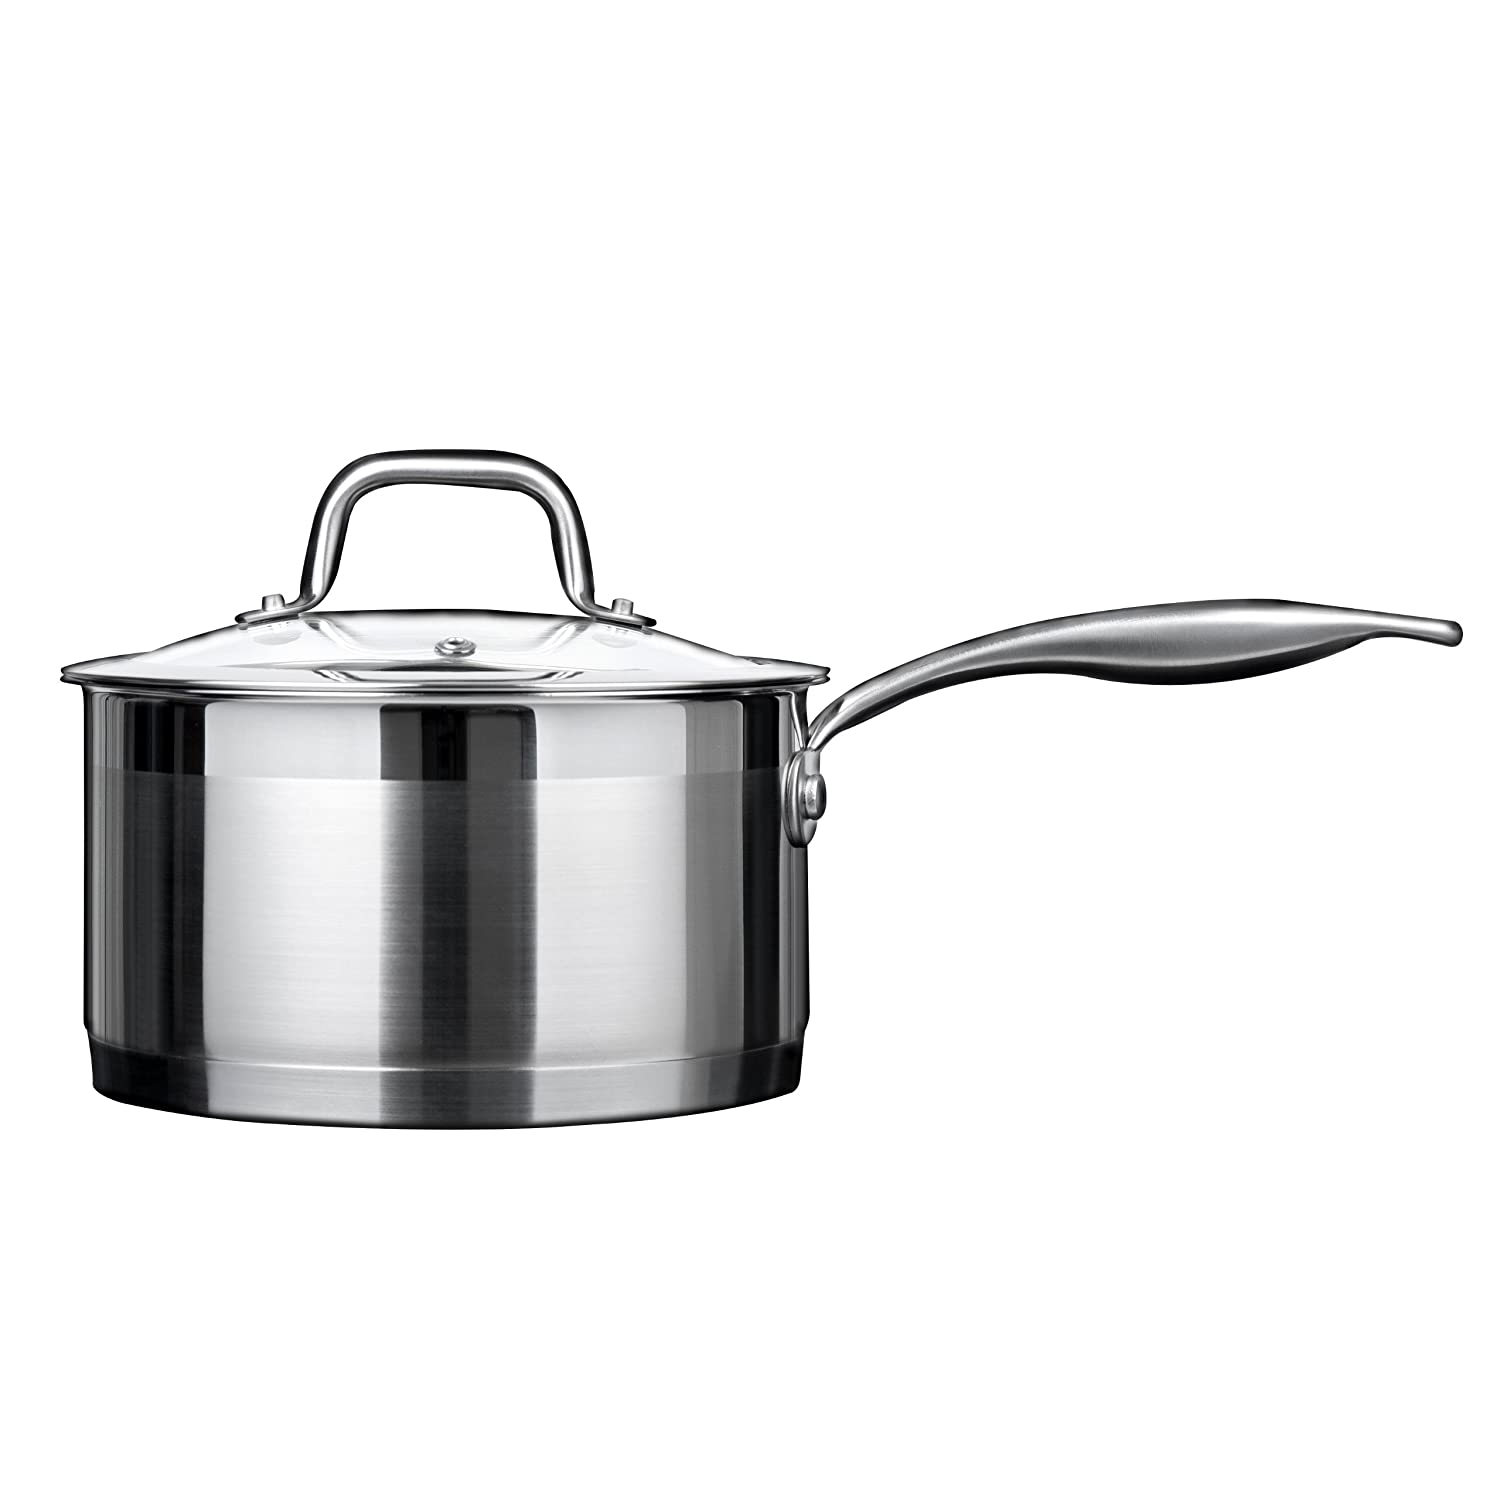 Duxtop Professional Stainless steel Cookware Induction Ready Impact-bonded Technology (2.5Qt Saucepan)